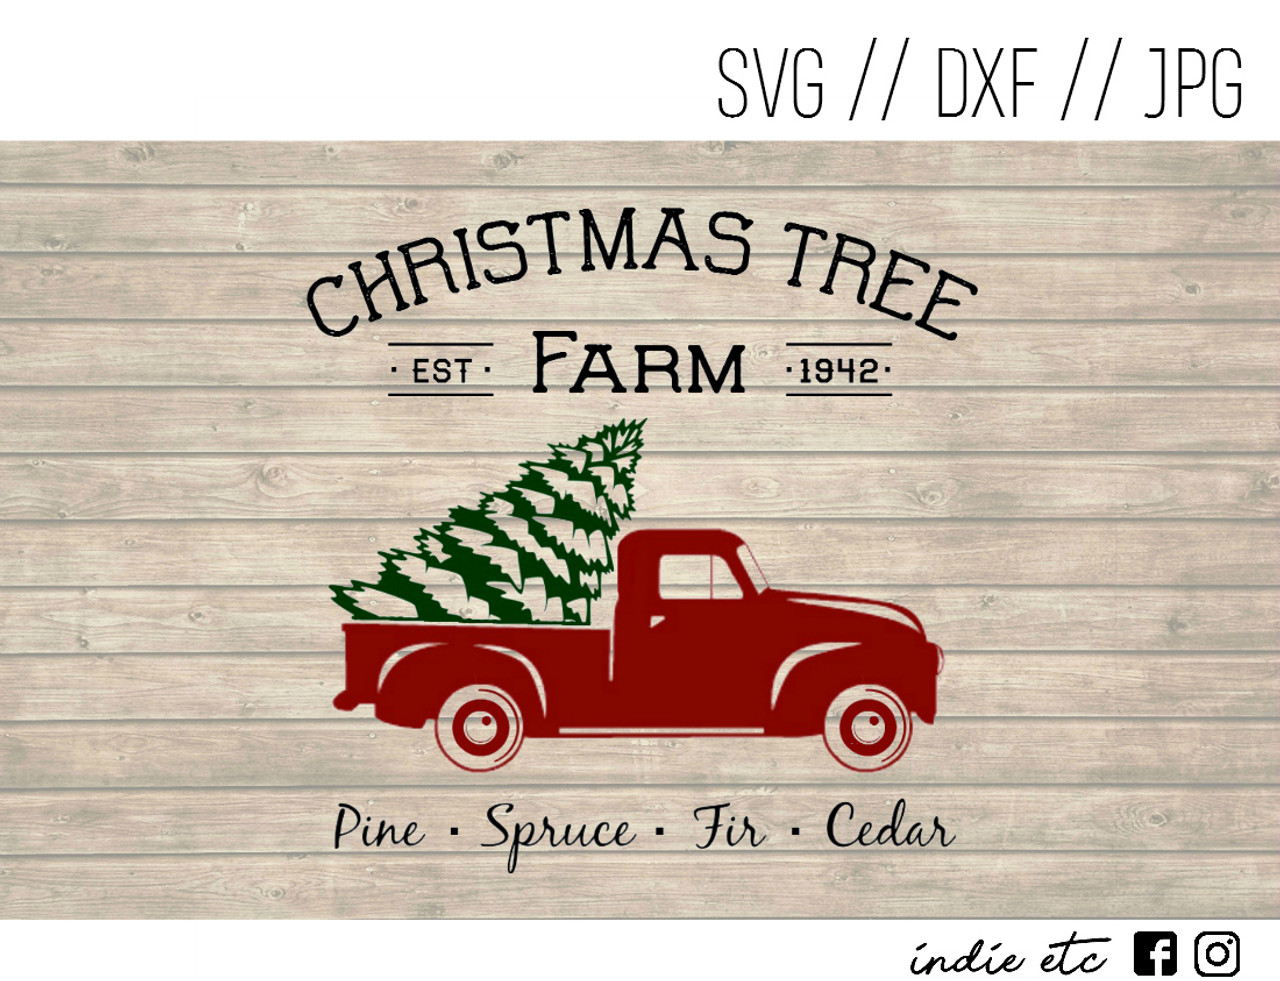 Christmas Truck Svg.Christmas Tree Farm Digital Art File With Red Truck Svg Dxf Jpeg Cut File